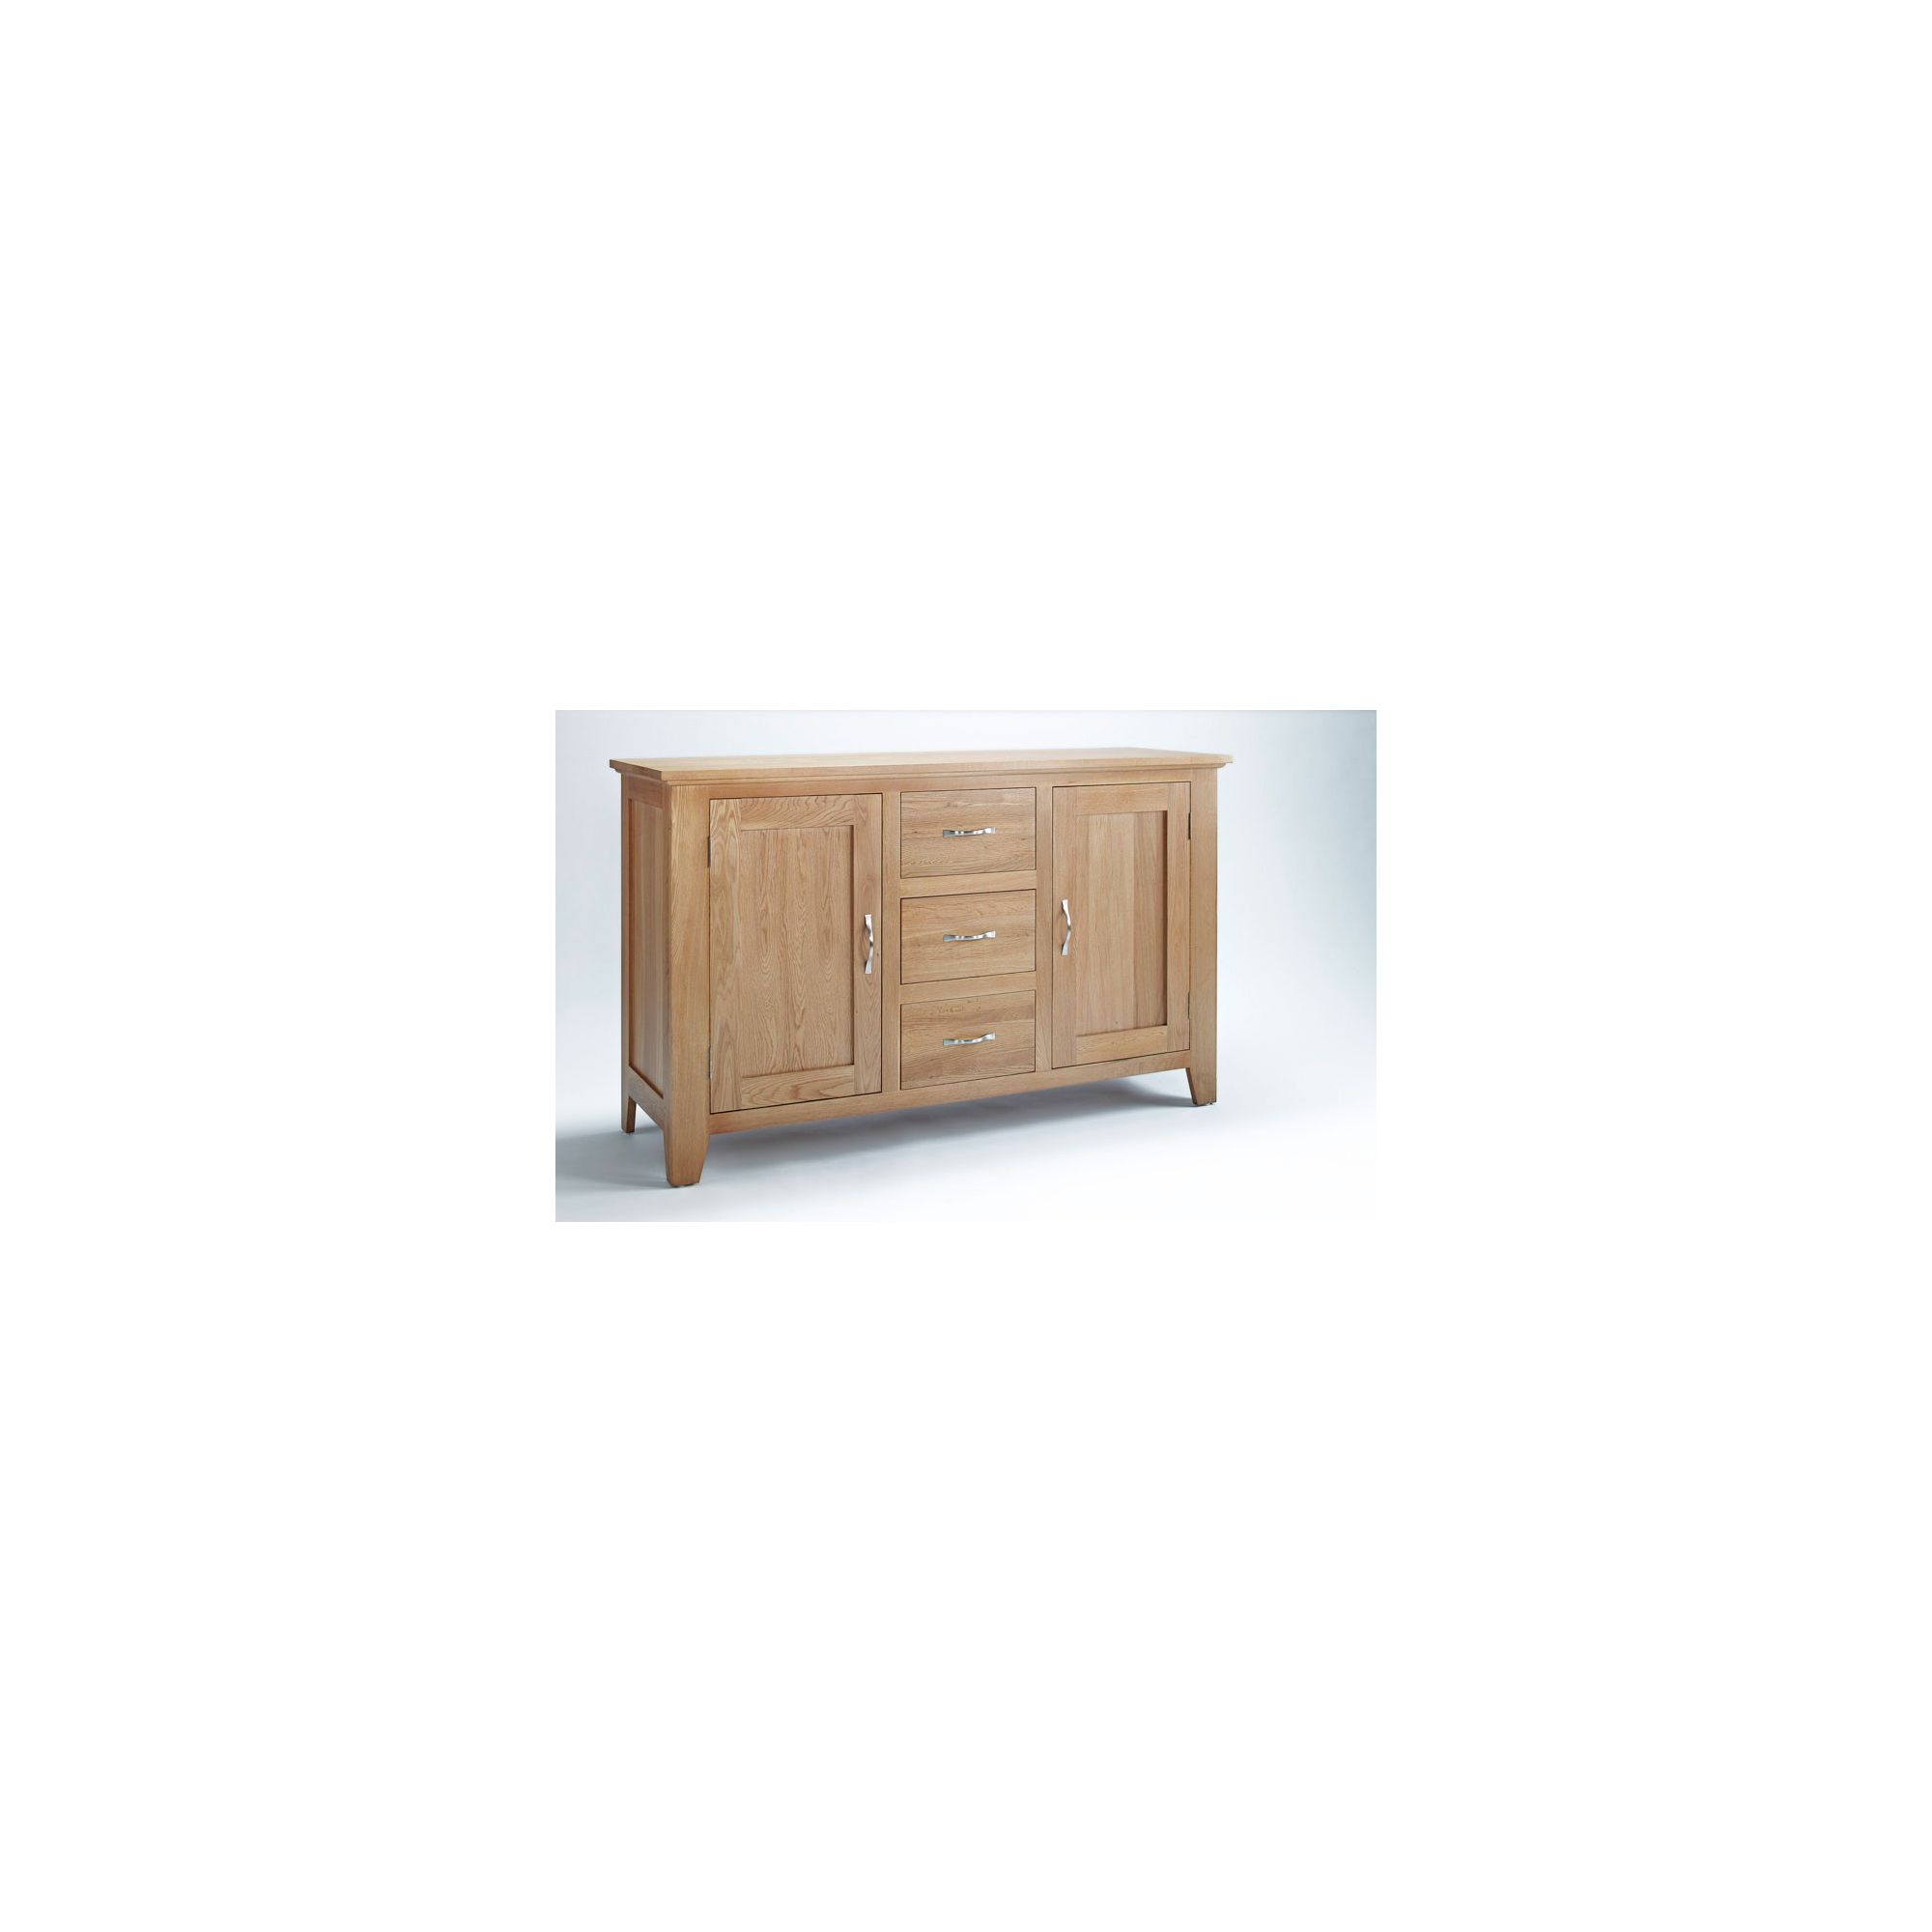 Ametis Sherwood Oak Three Drawer Sideboard at Tesco Direct